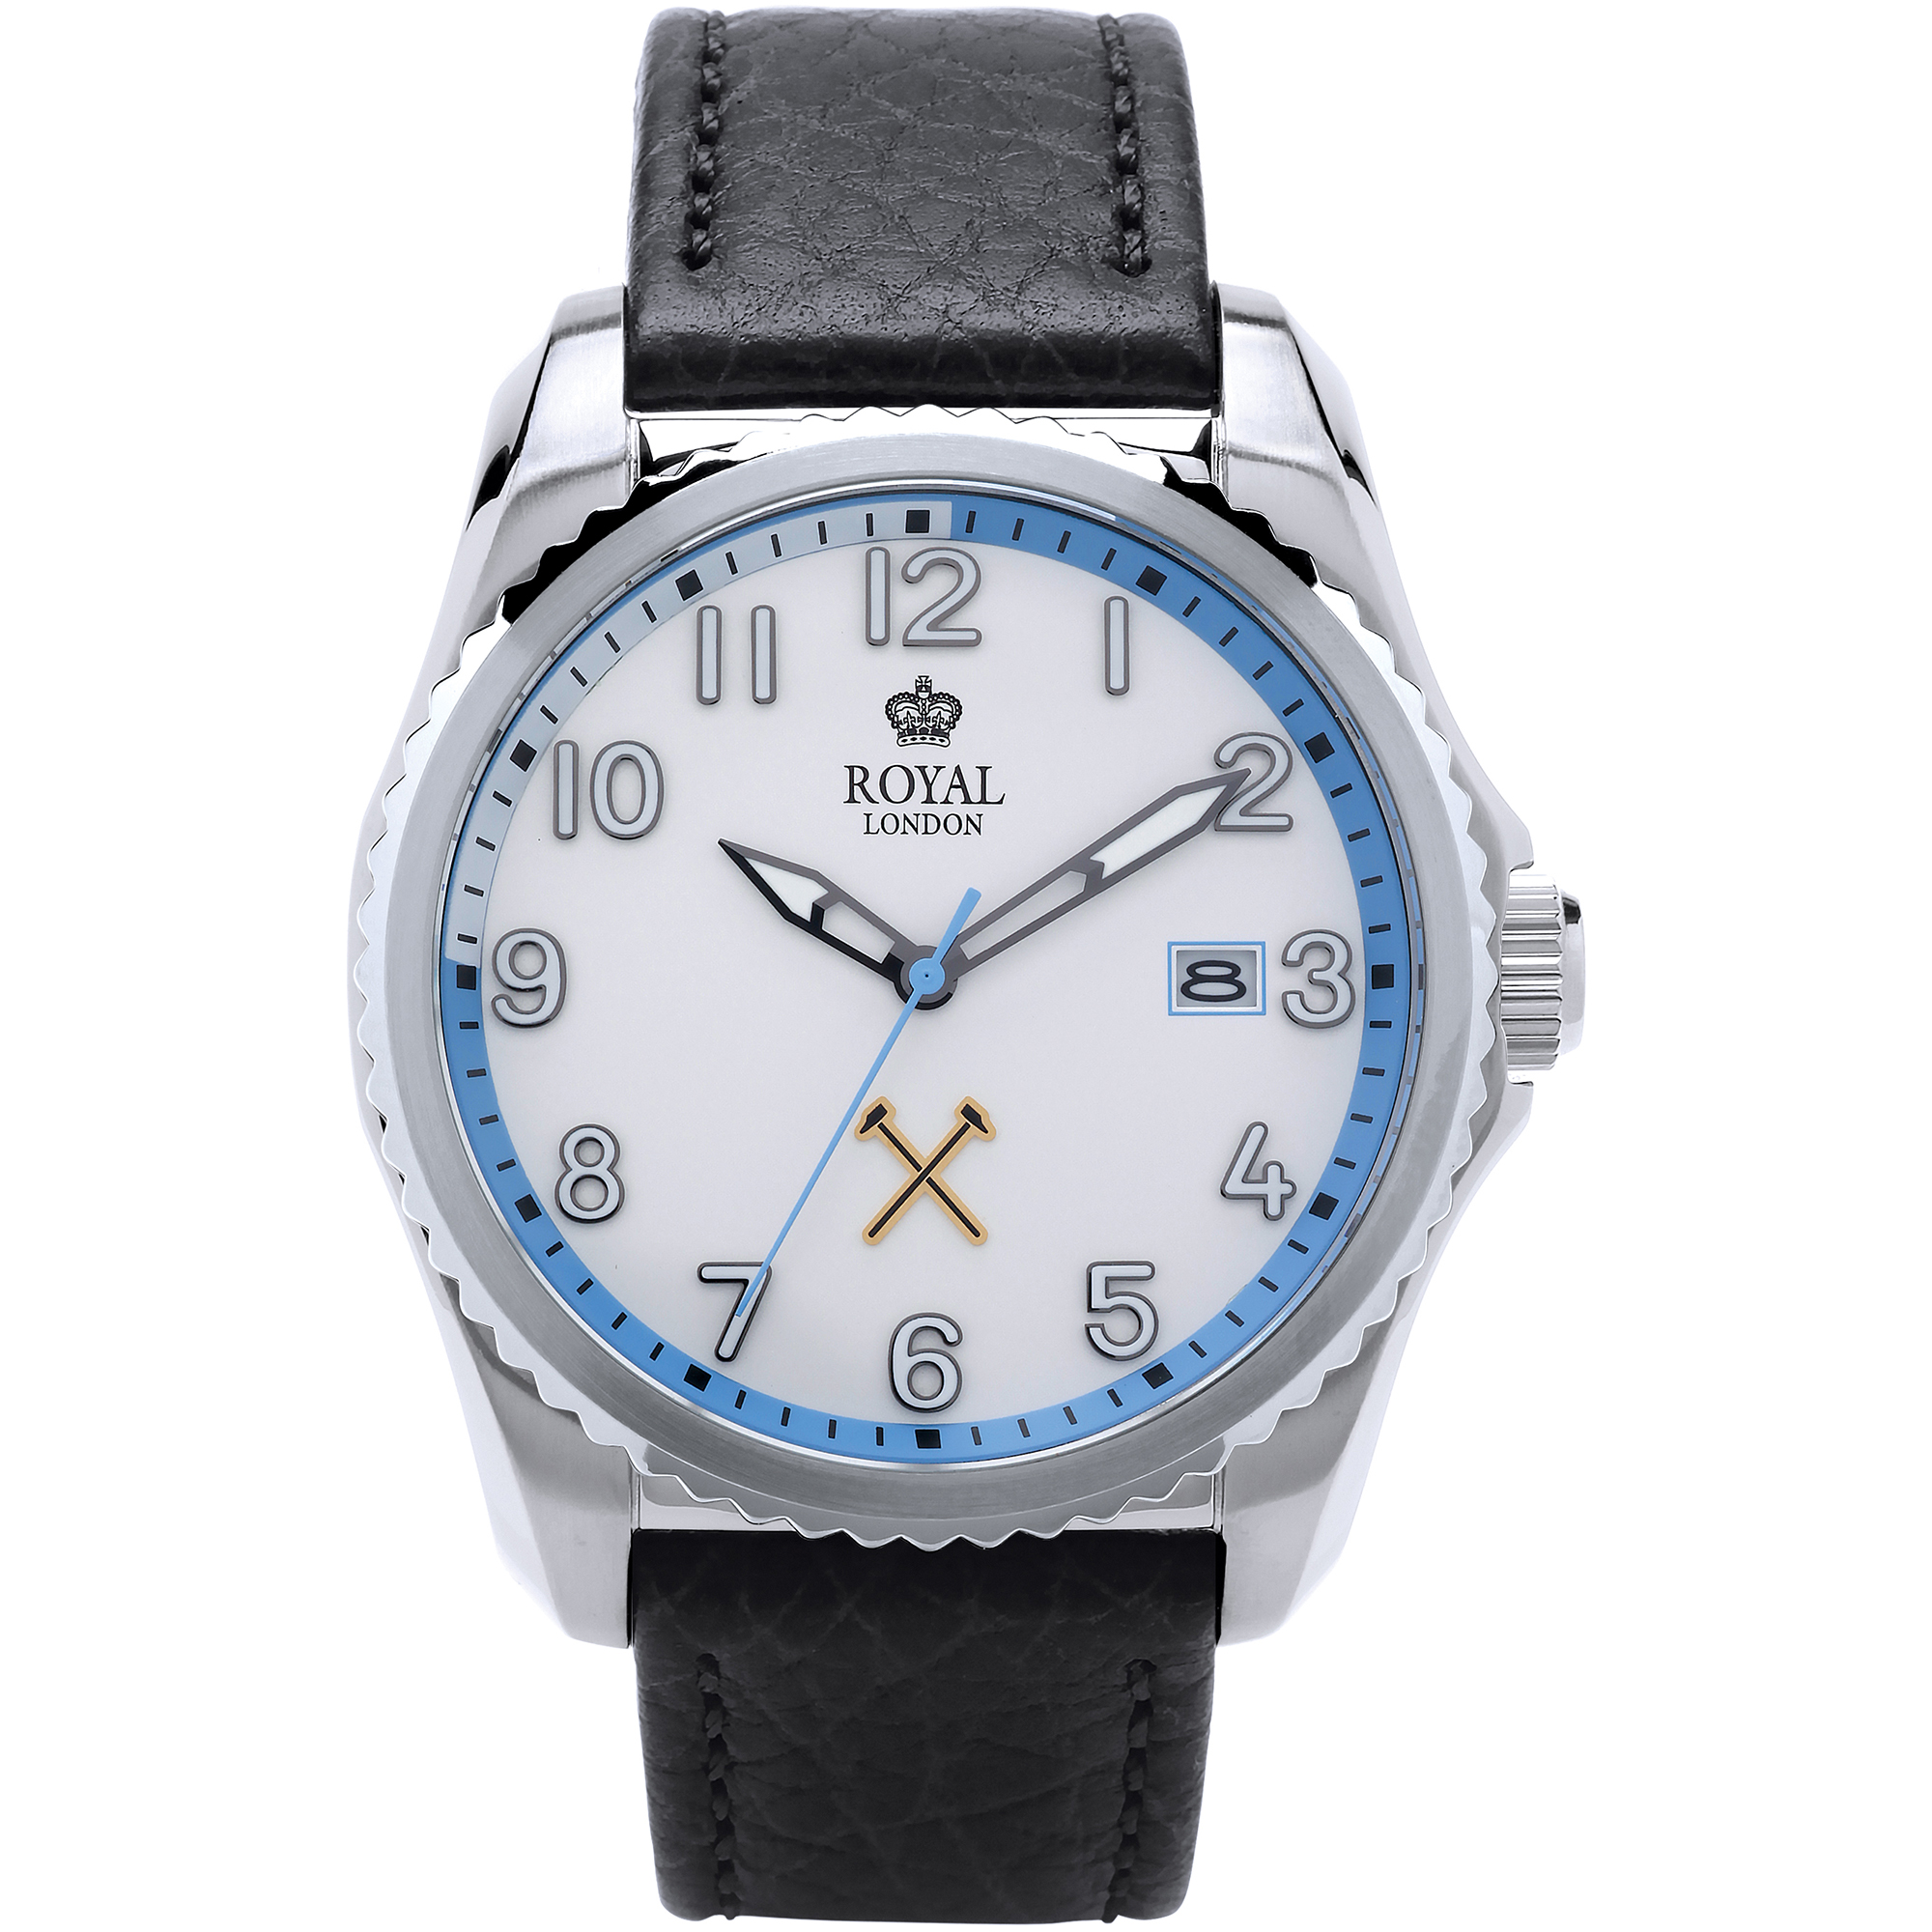 ROYAL LONDON 1 SS DATE SPORT WATCH